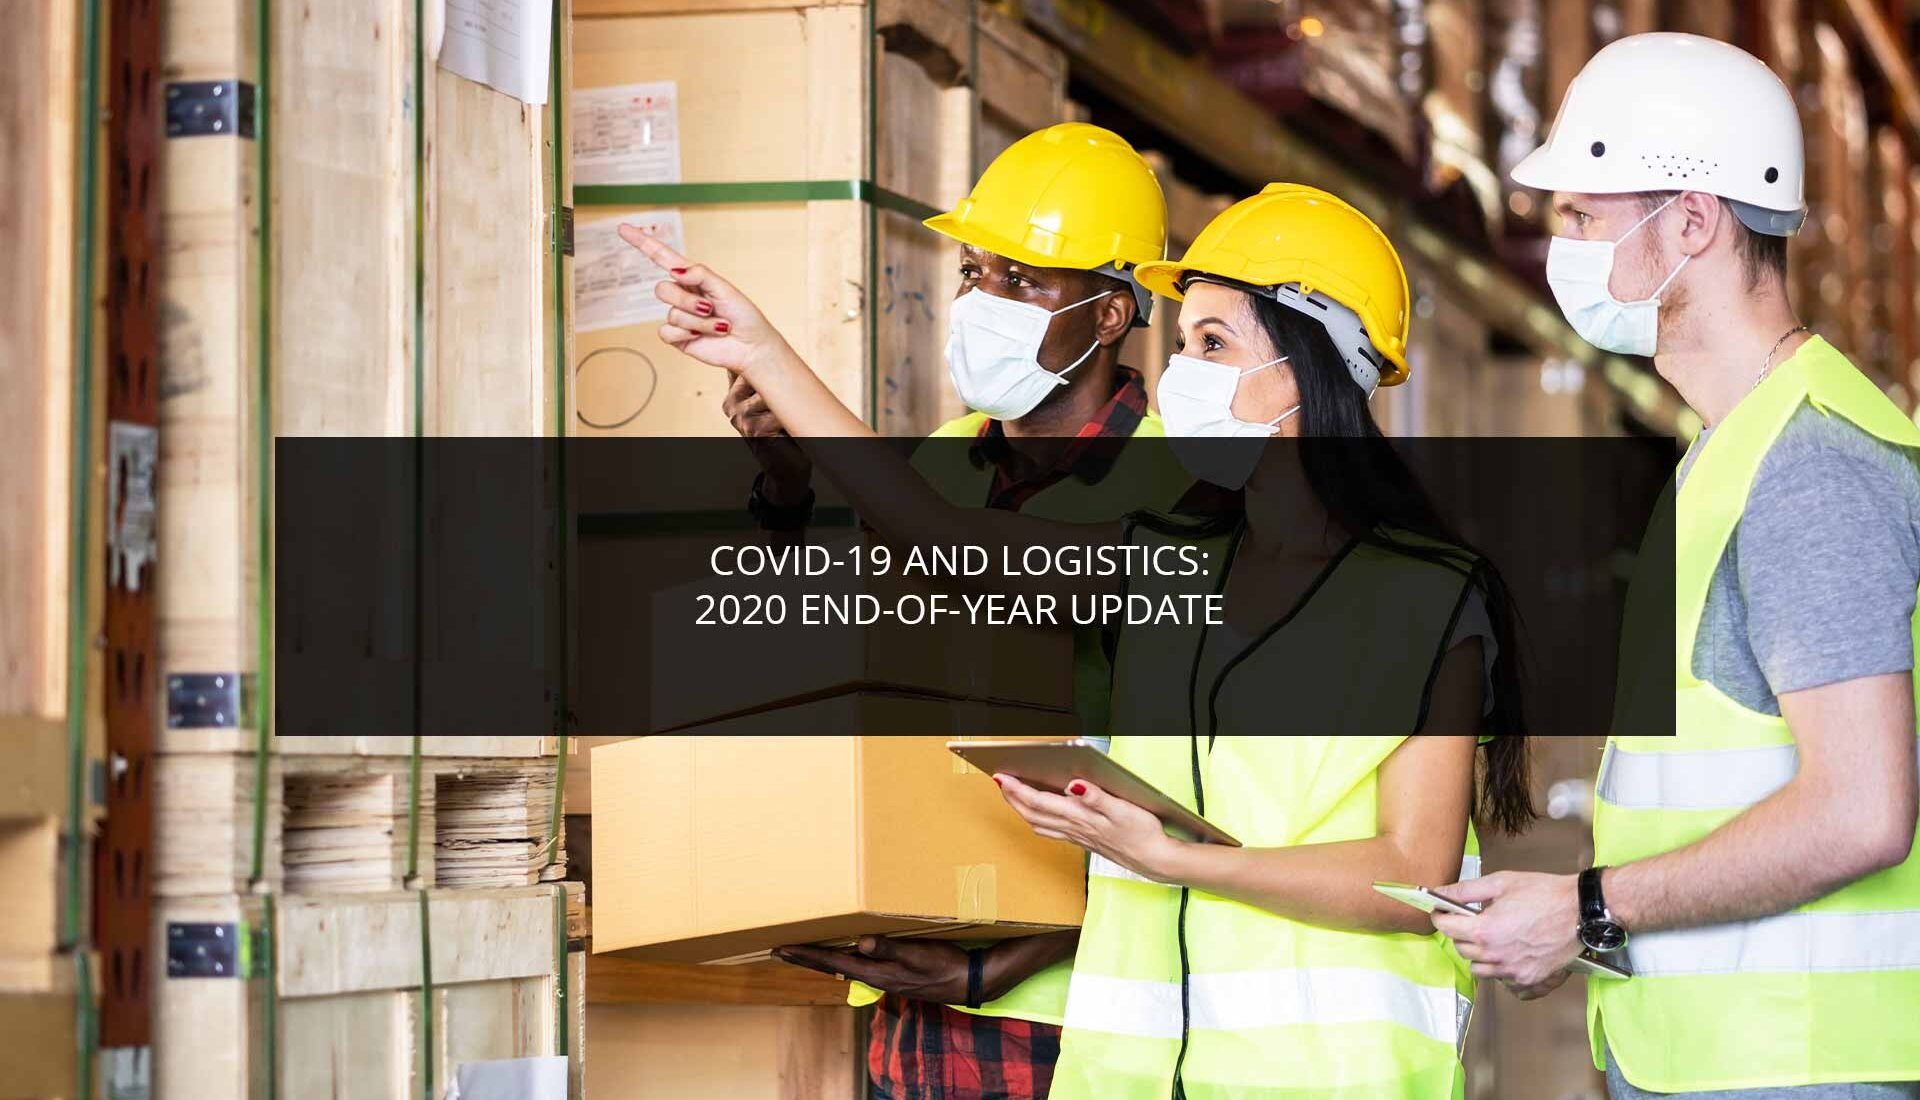 COVID-19 and Logistics: 2020 End-of-Year Update